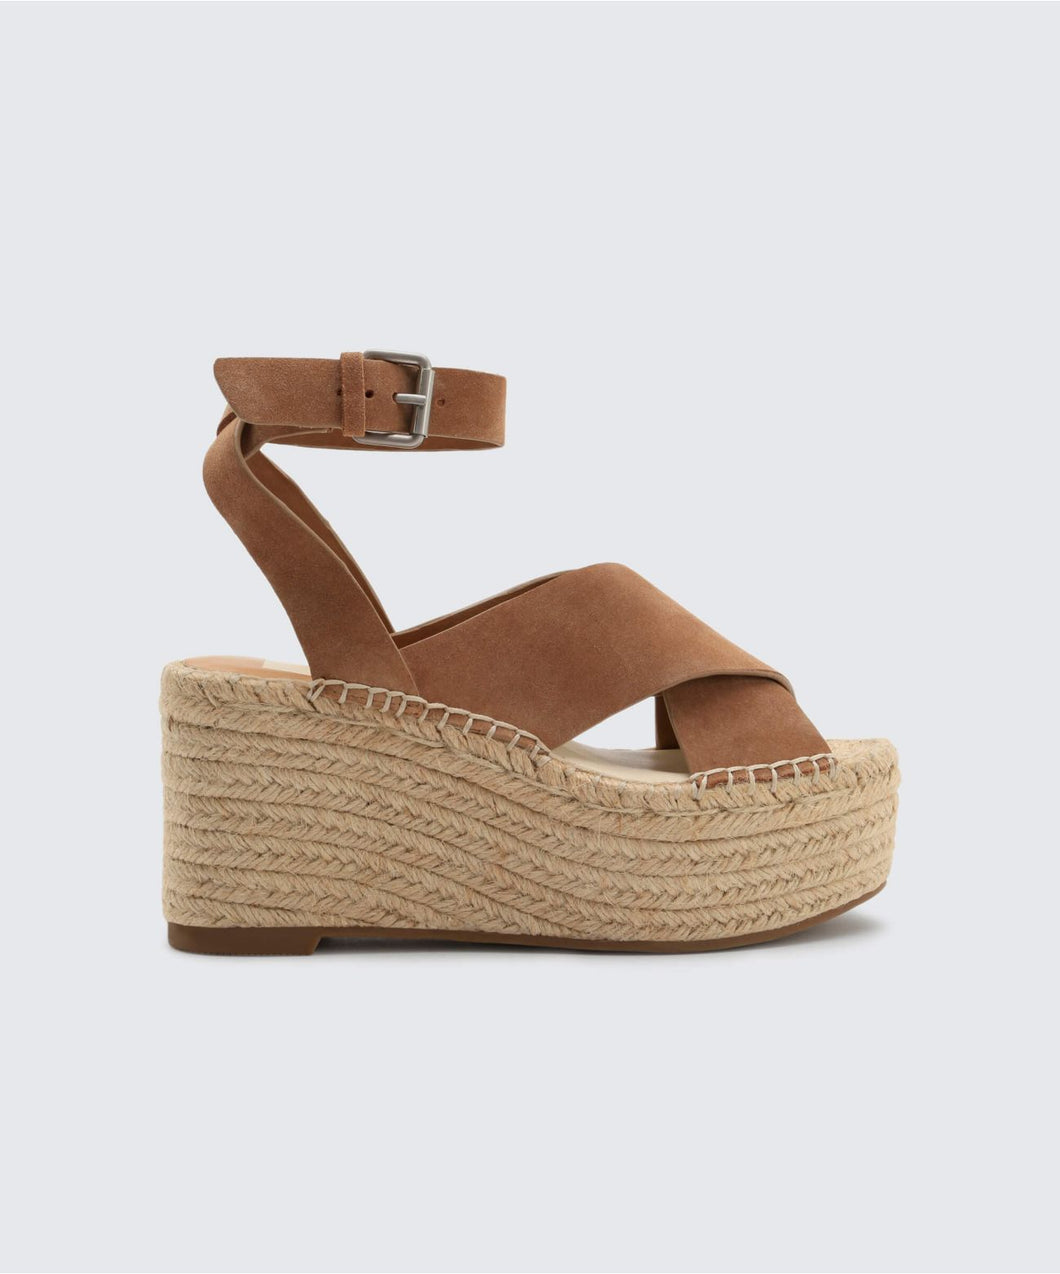 CARSIE WEDGES SADDLE -   Dolce Vita